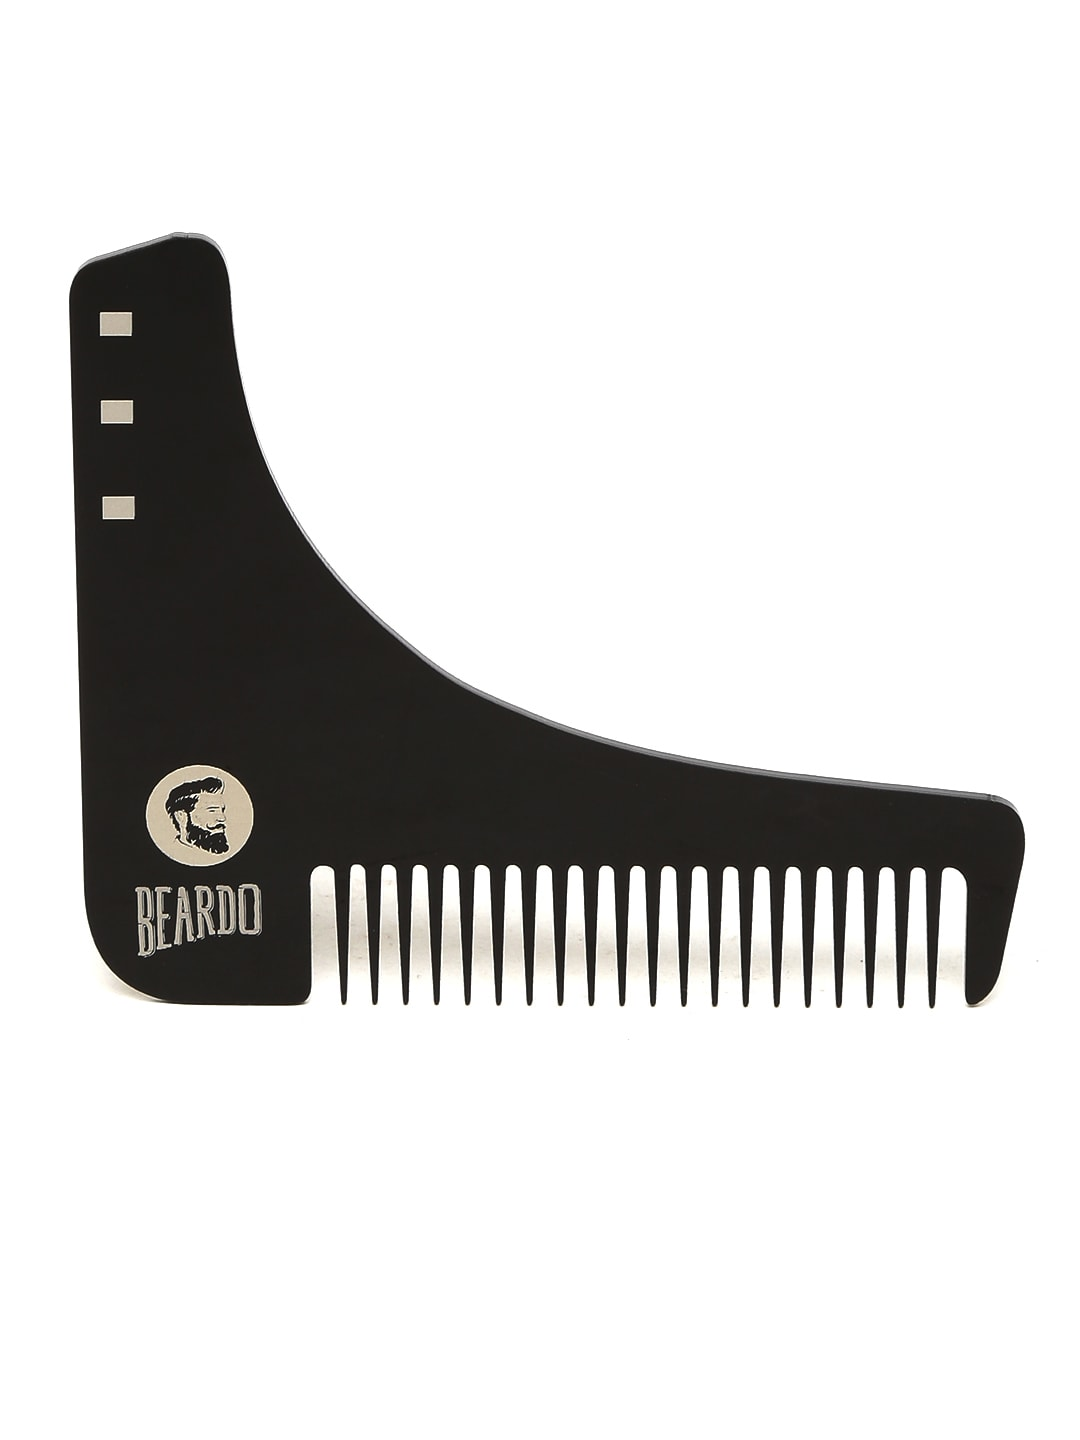 BEARDO Beard Shaping and Styling Tool image